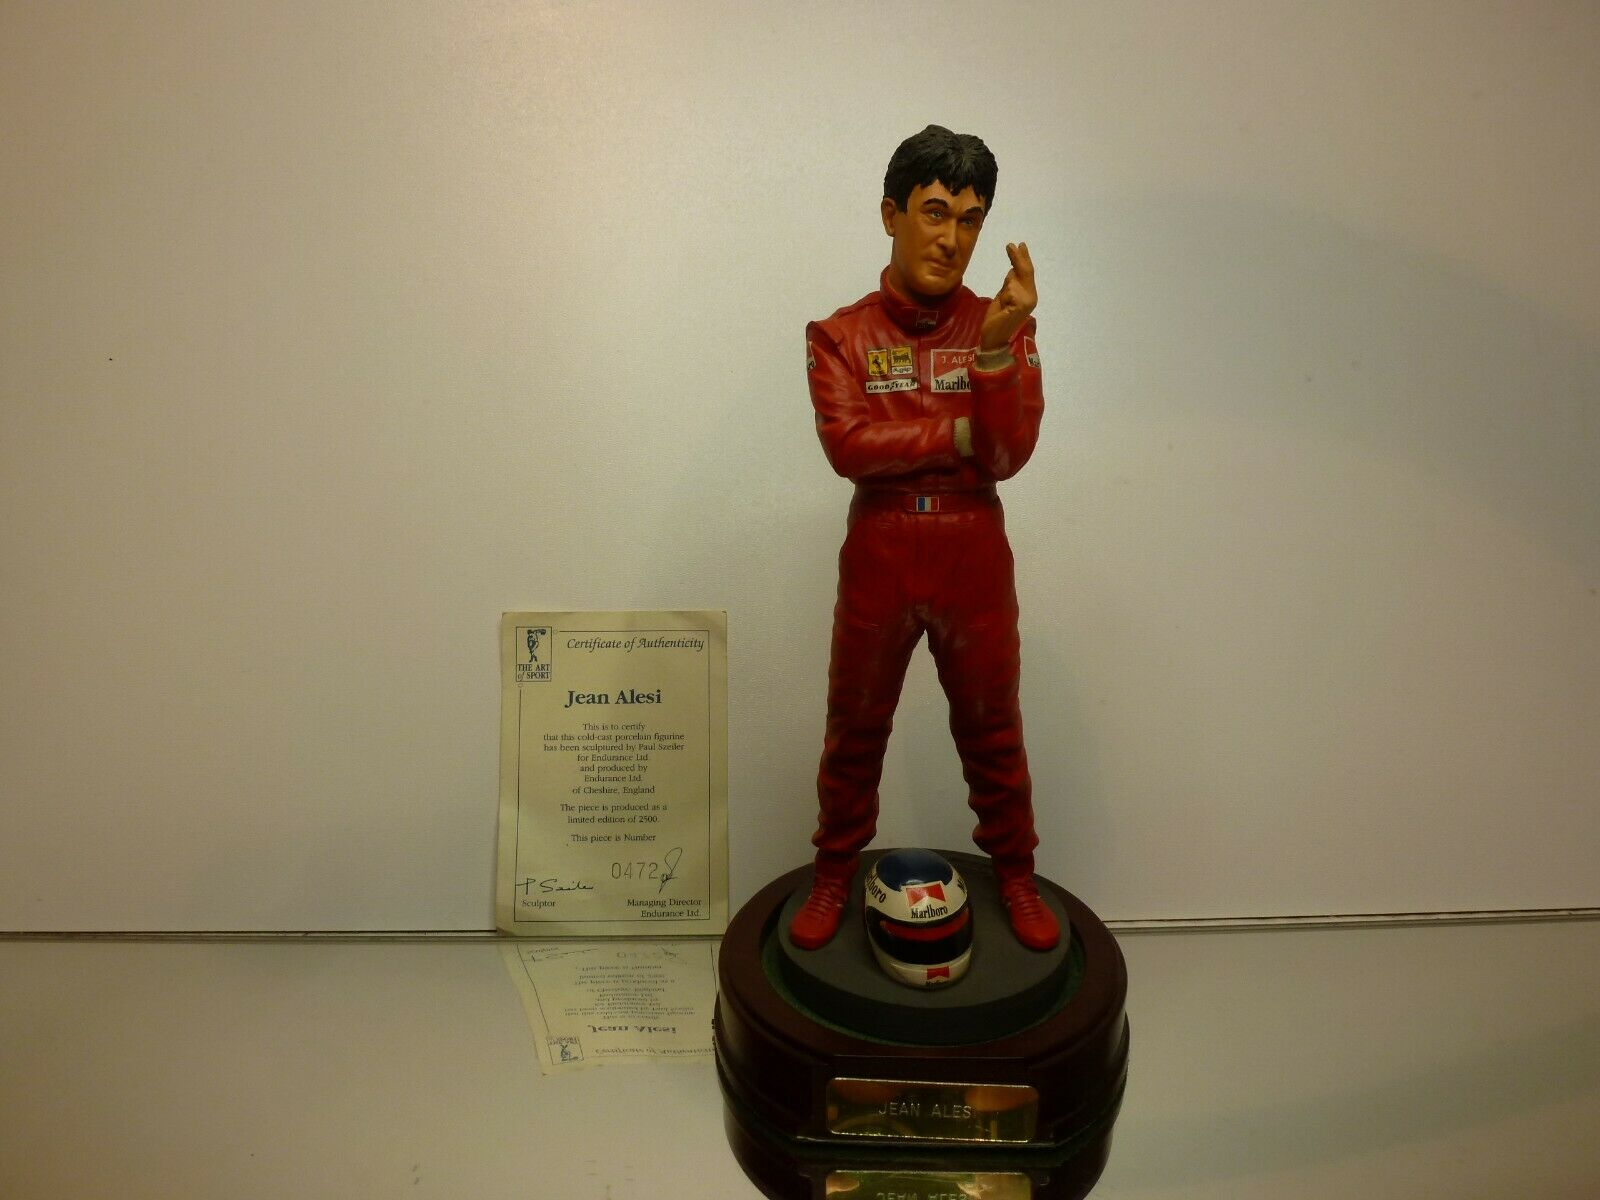 THE ART  OF SPORT - FIGURINE of JEAN ALESSI F1 - H21.0cm limited ed - VERY GOOD  assurance qualité